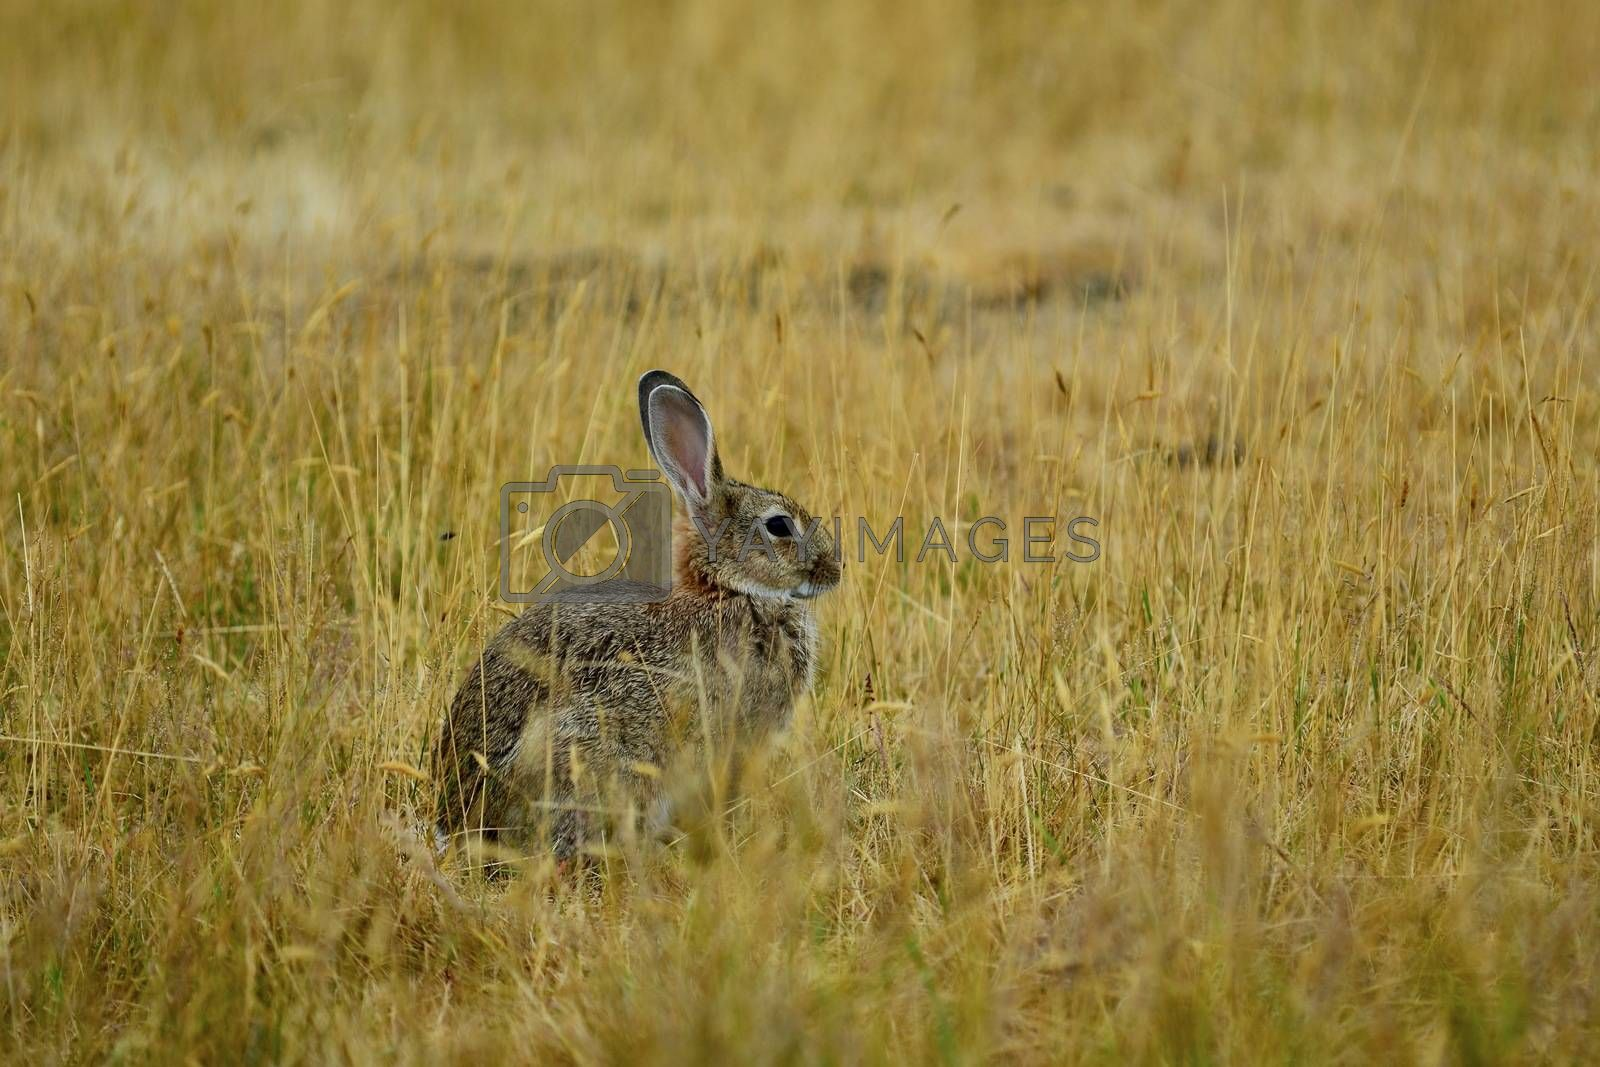 Hares are swift animals and can run up to 80 km/h (50 mph) over short distances.